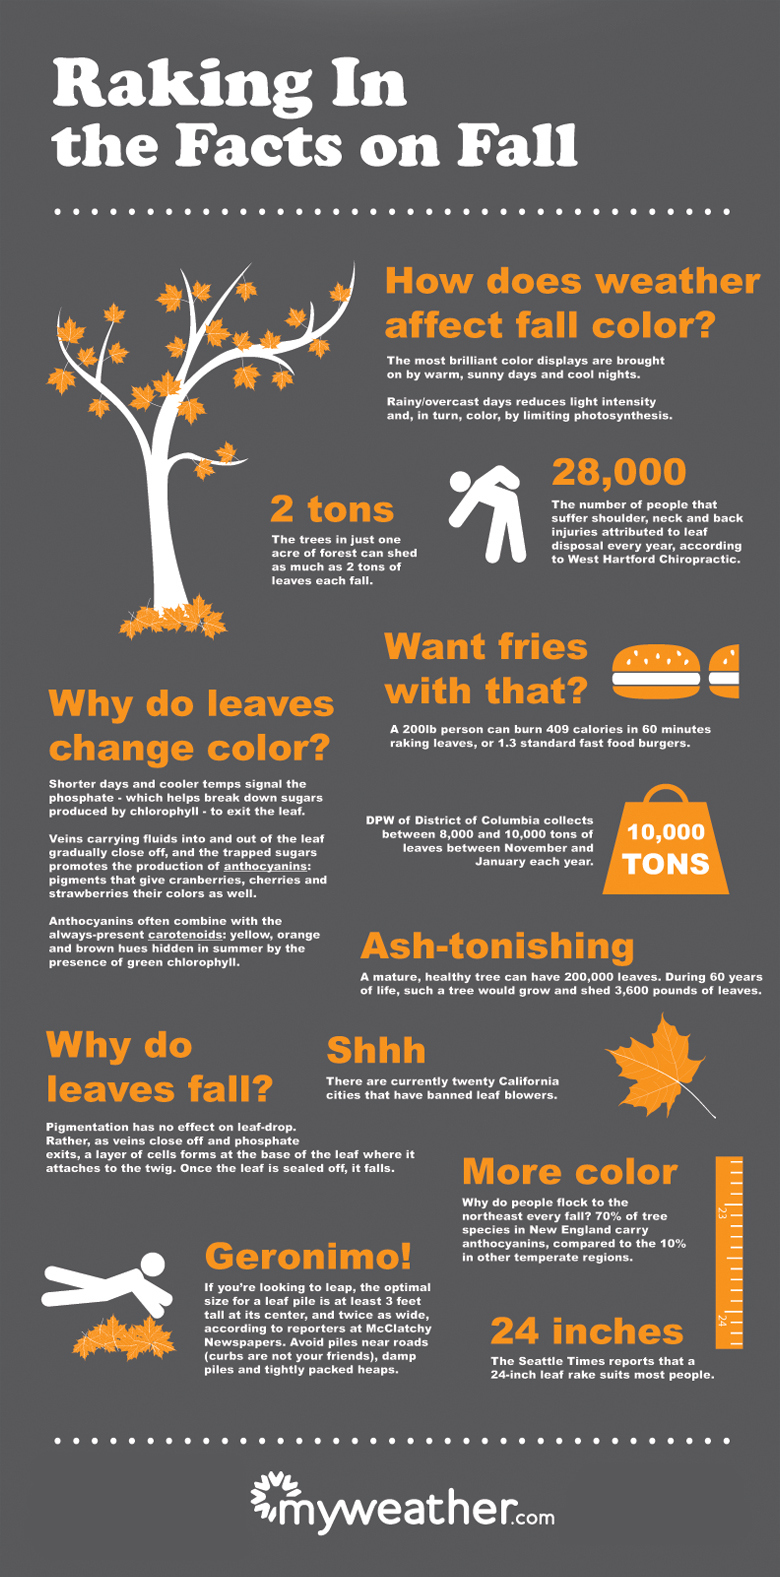 Source: http://infographiclist.com/2011/10/11/raking-in-the-facts-on-fall-infographic/